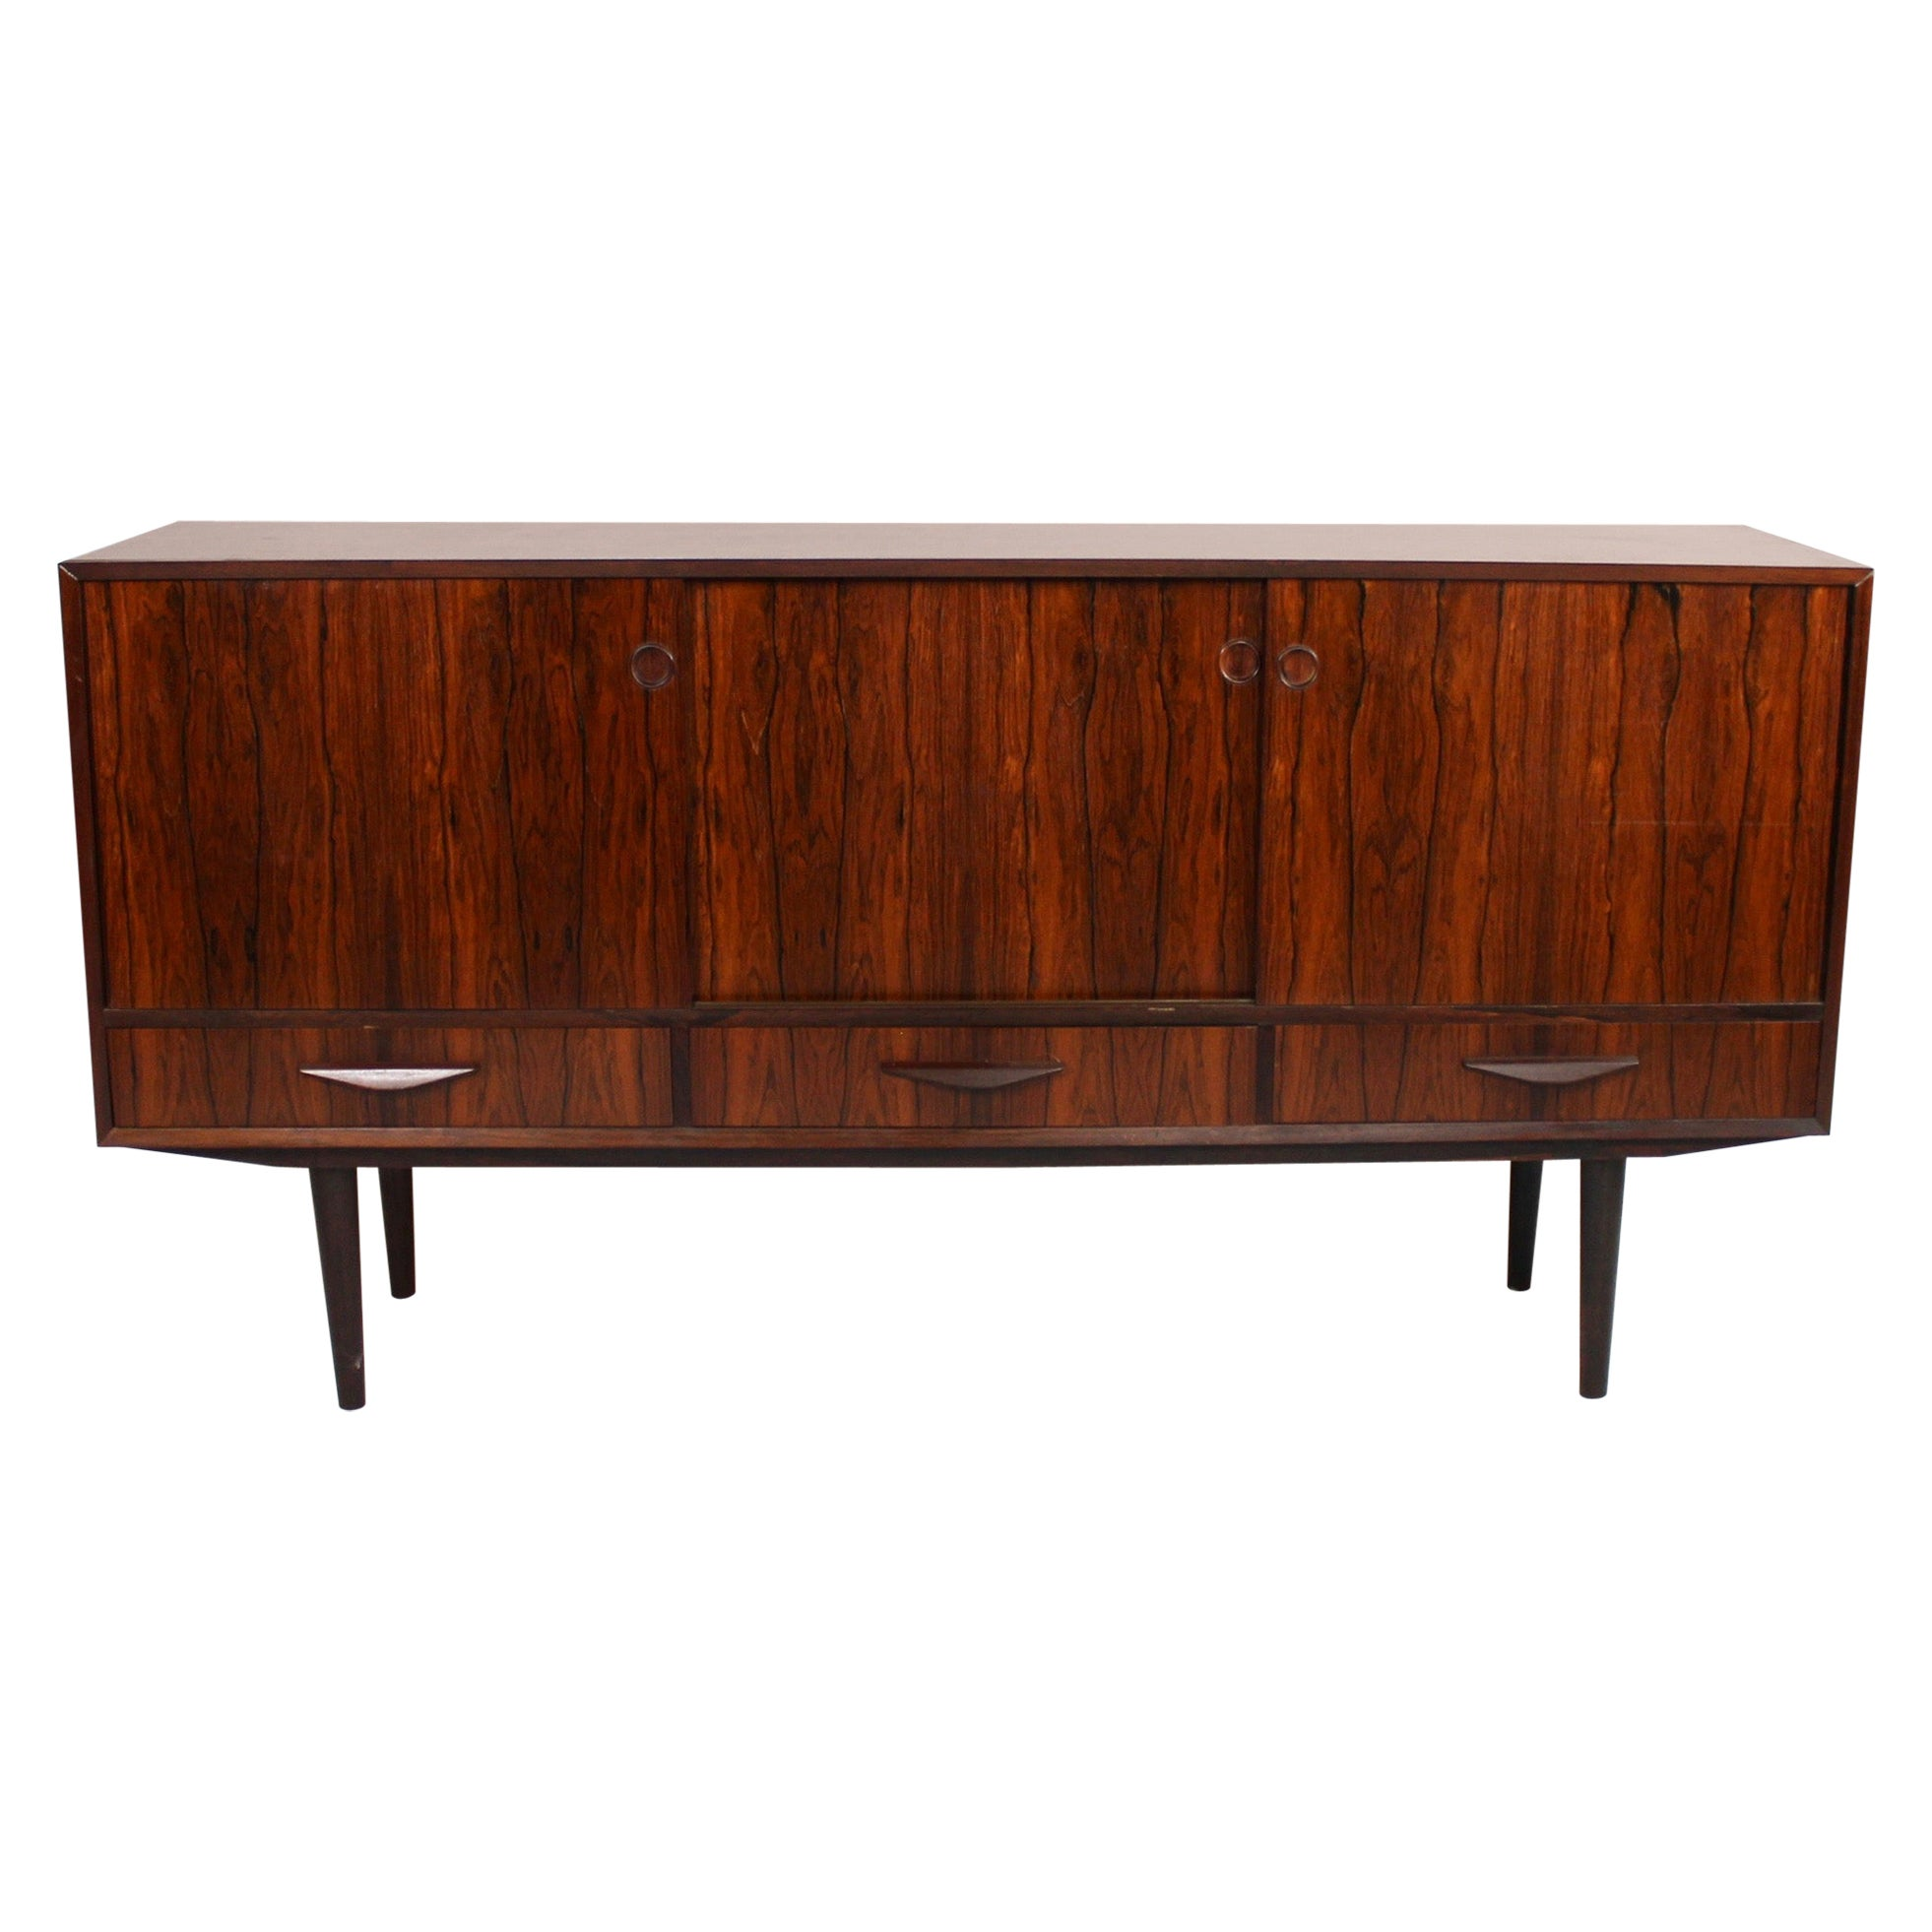 Sideboard in Rosewood of Danish Design from the 1960s